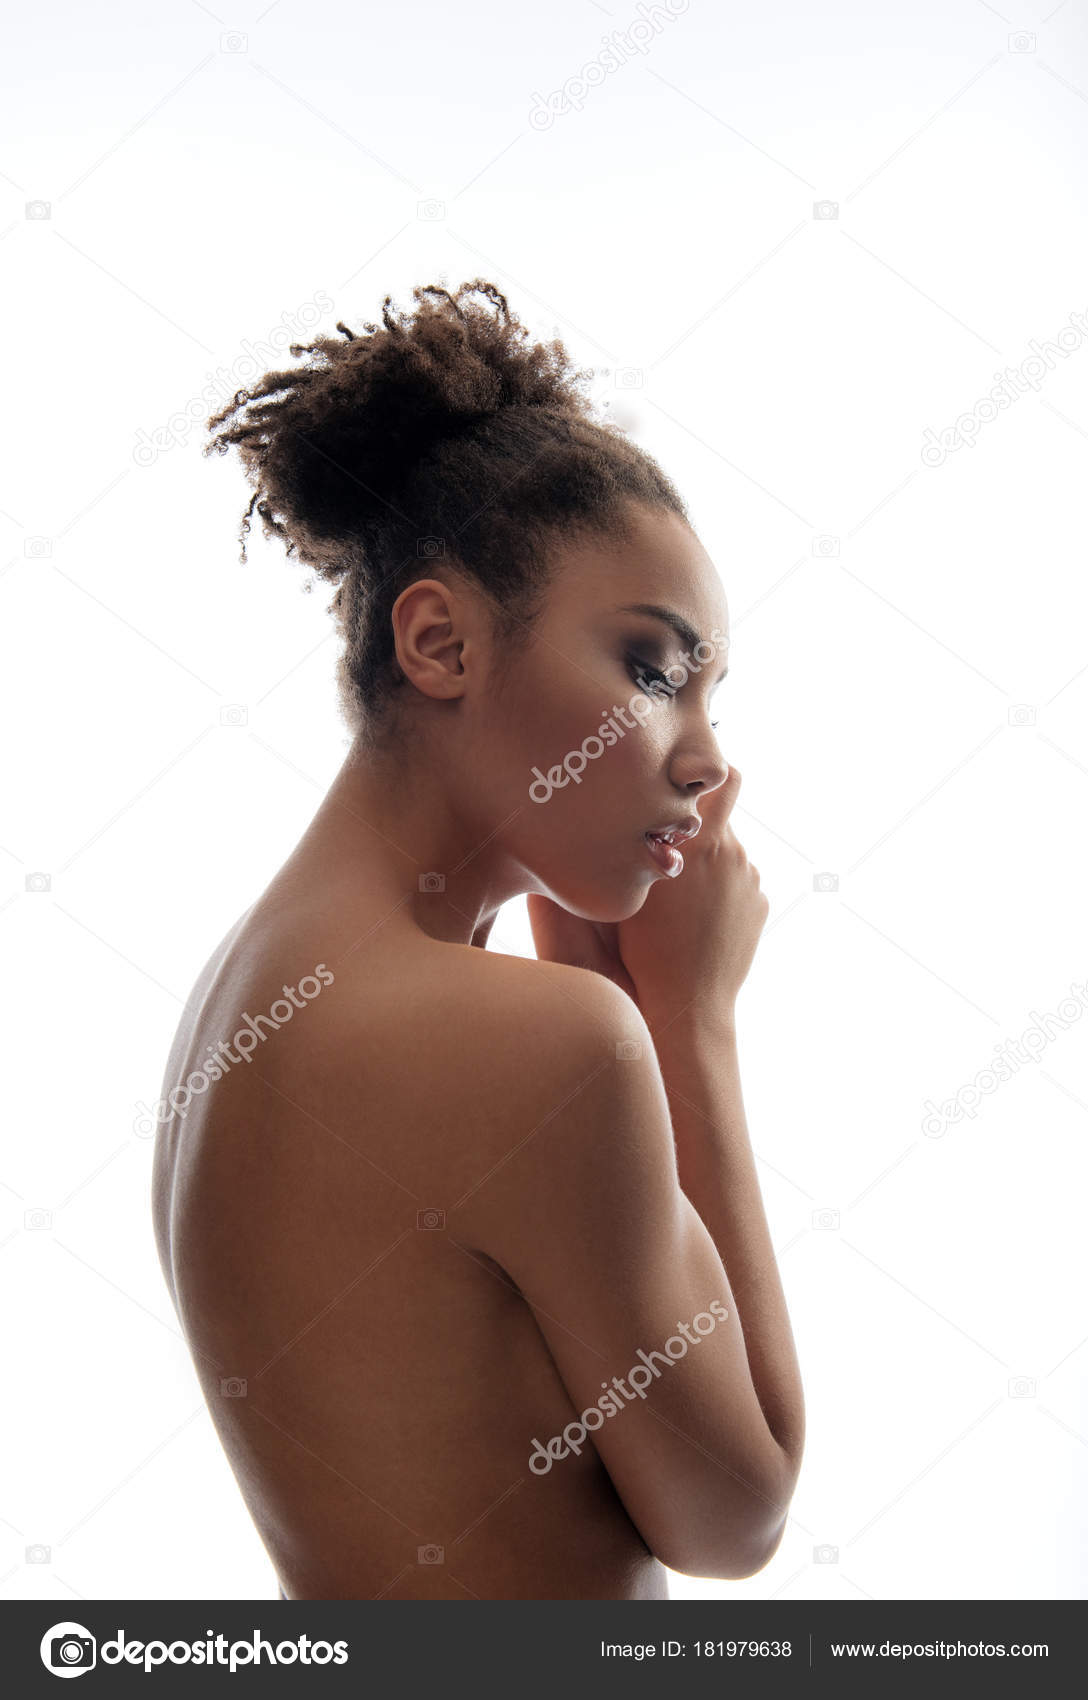 Woman poses nude side profile